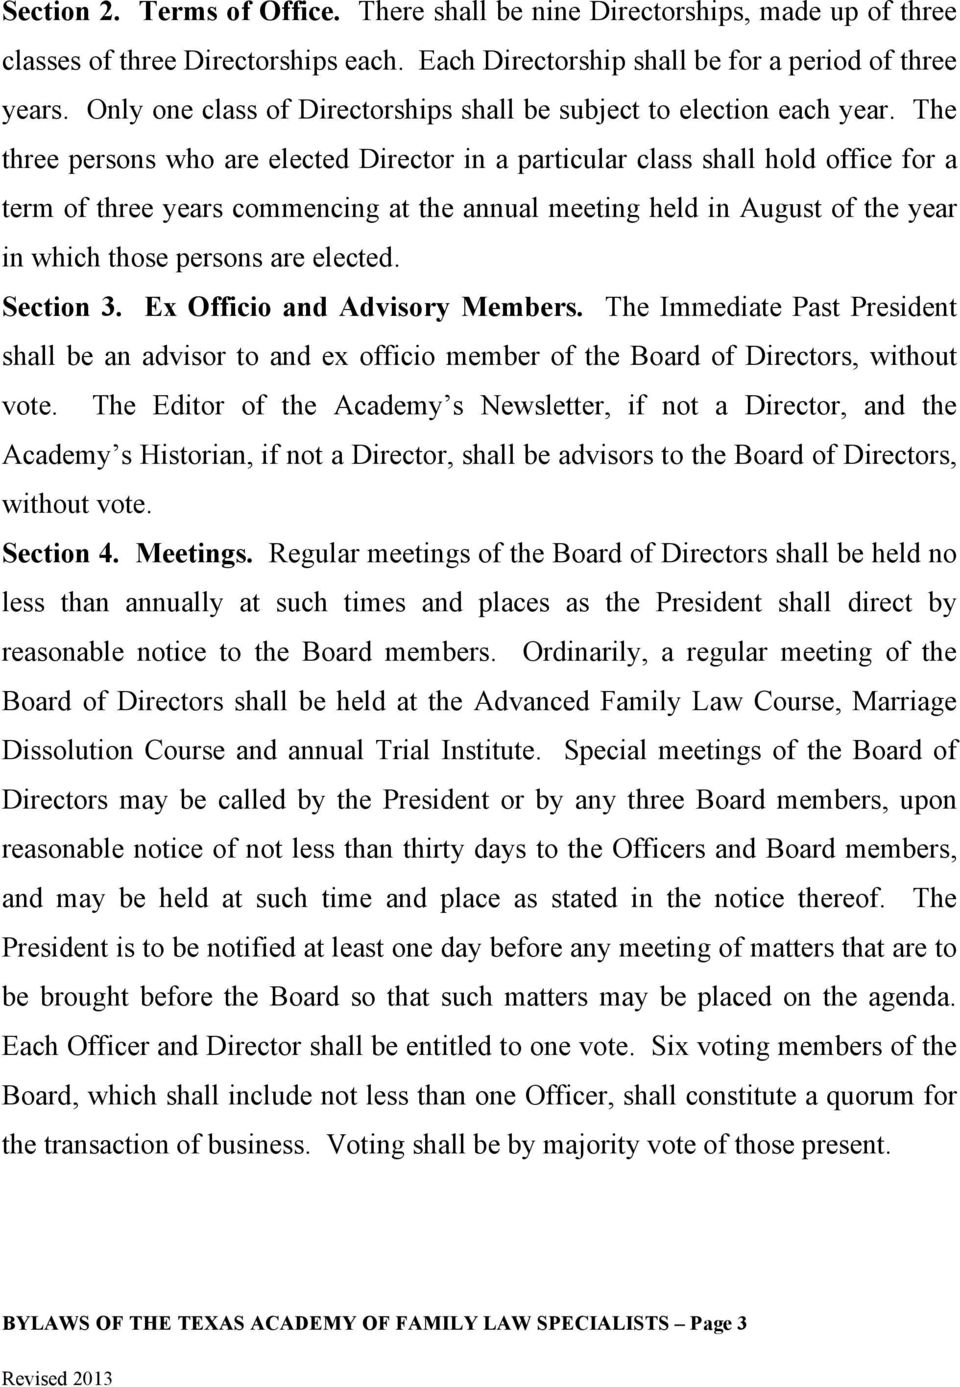 The three persons who are elected Director in a particular class shall hold office for a term of three years commencing at the annual meeting held in August of the year in which those persons are